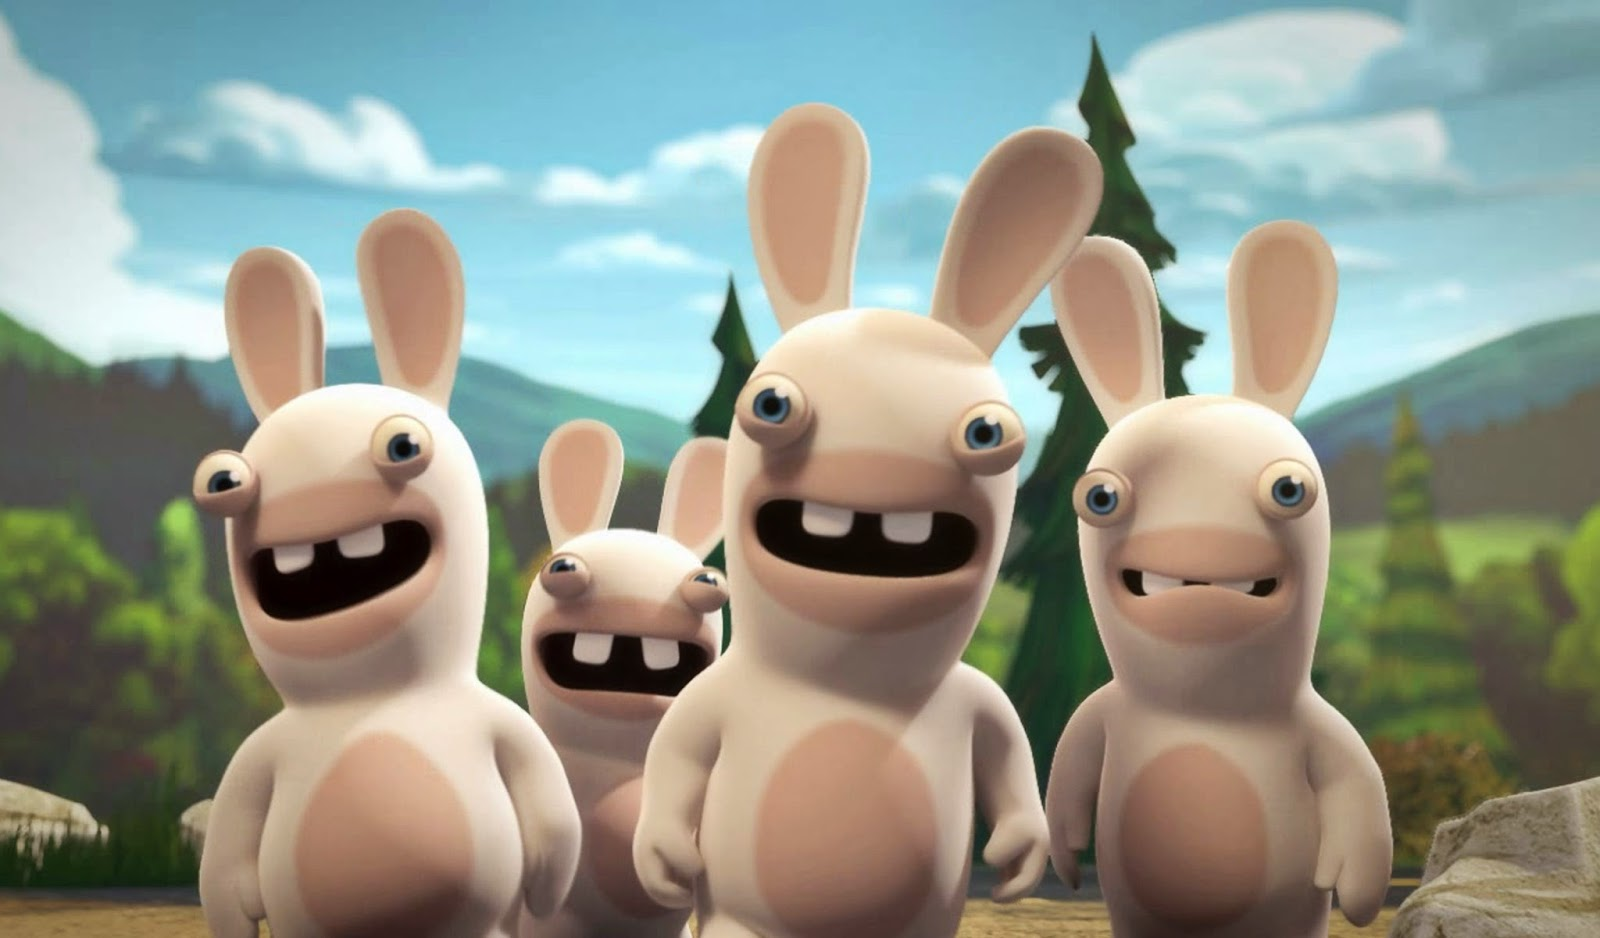 Rabbids Appisodes Interactive TV Show Now Available On Android